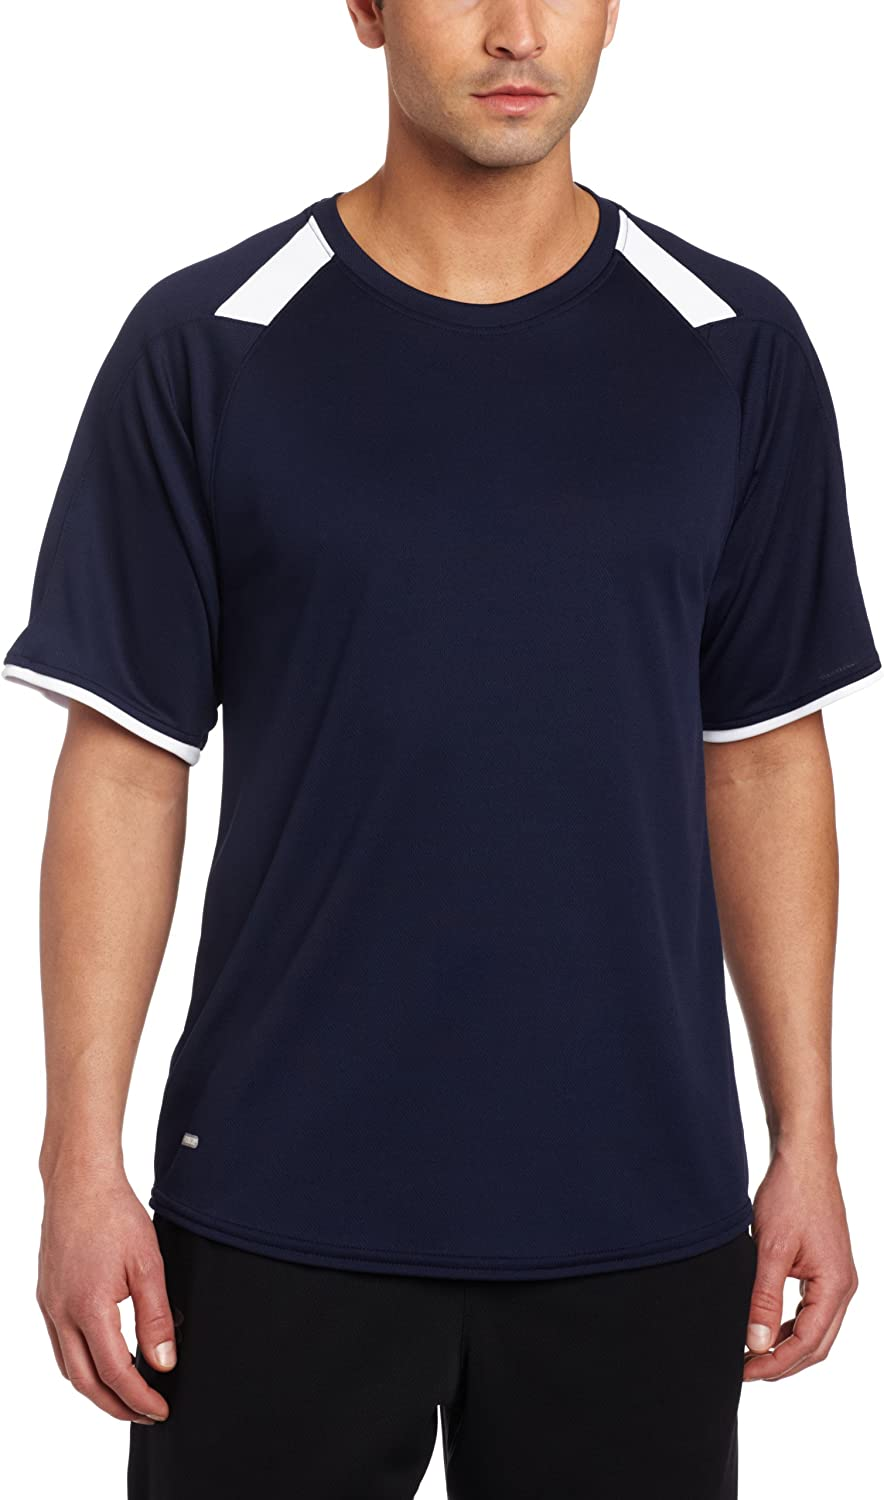 Mens Russell Athletic Short Sleeve Performance Crew Shirt Size Motion Fitness